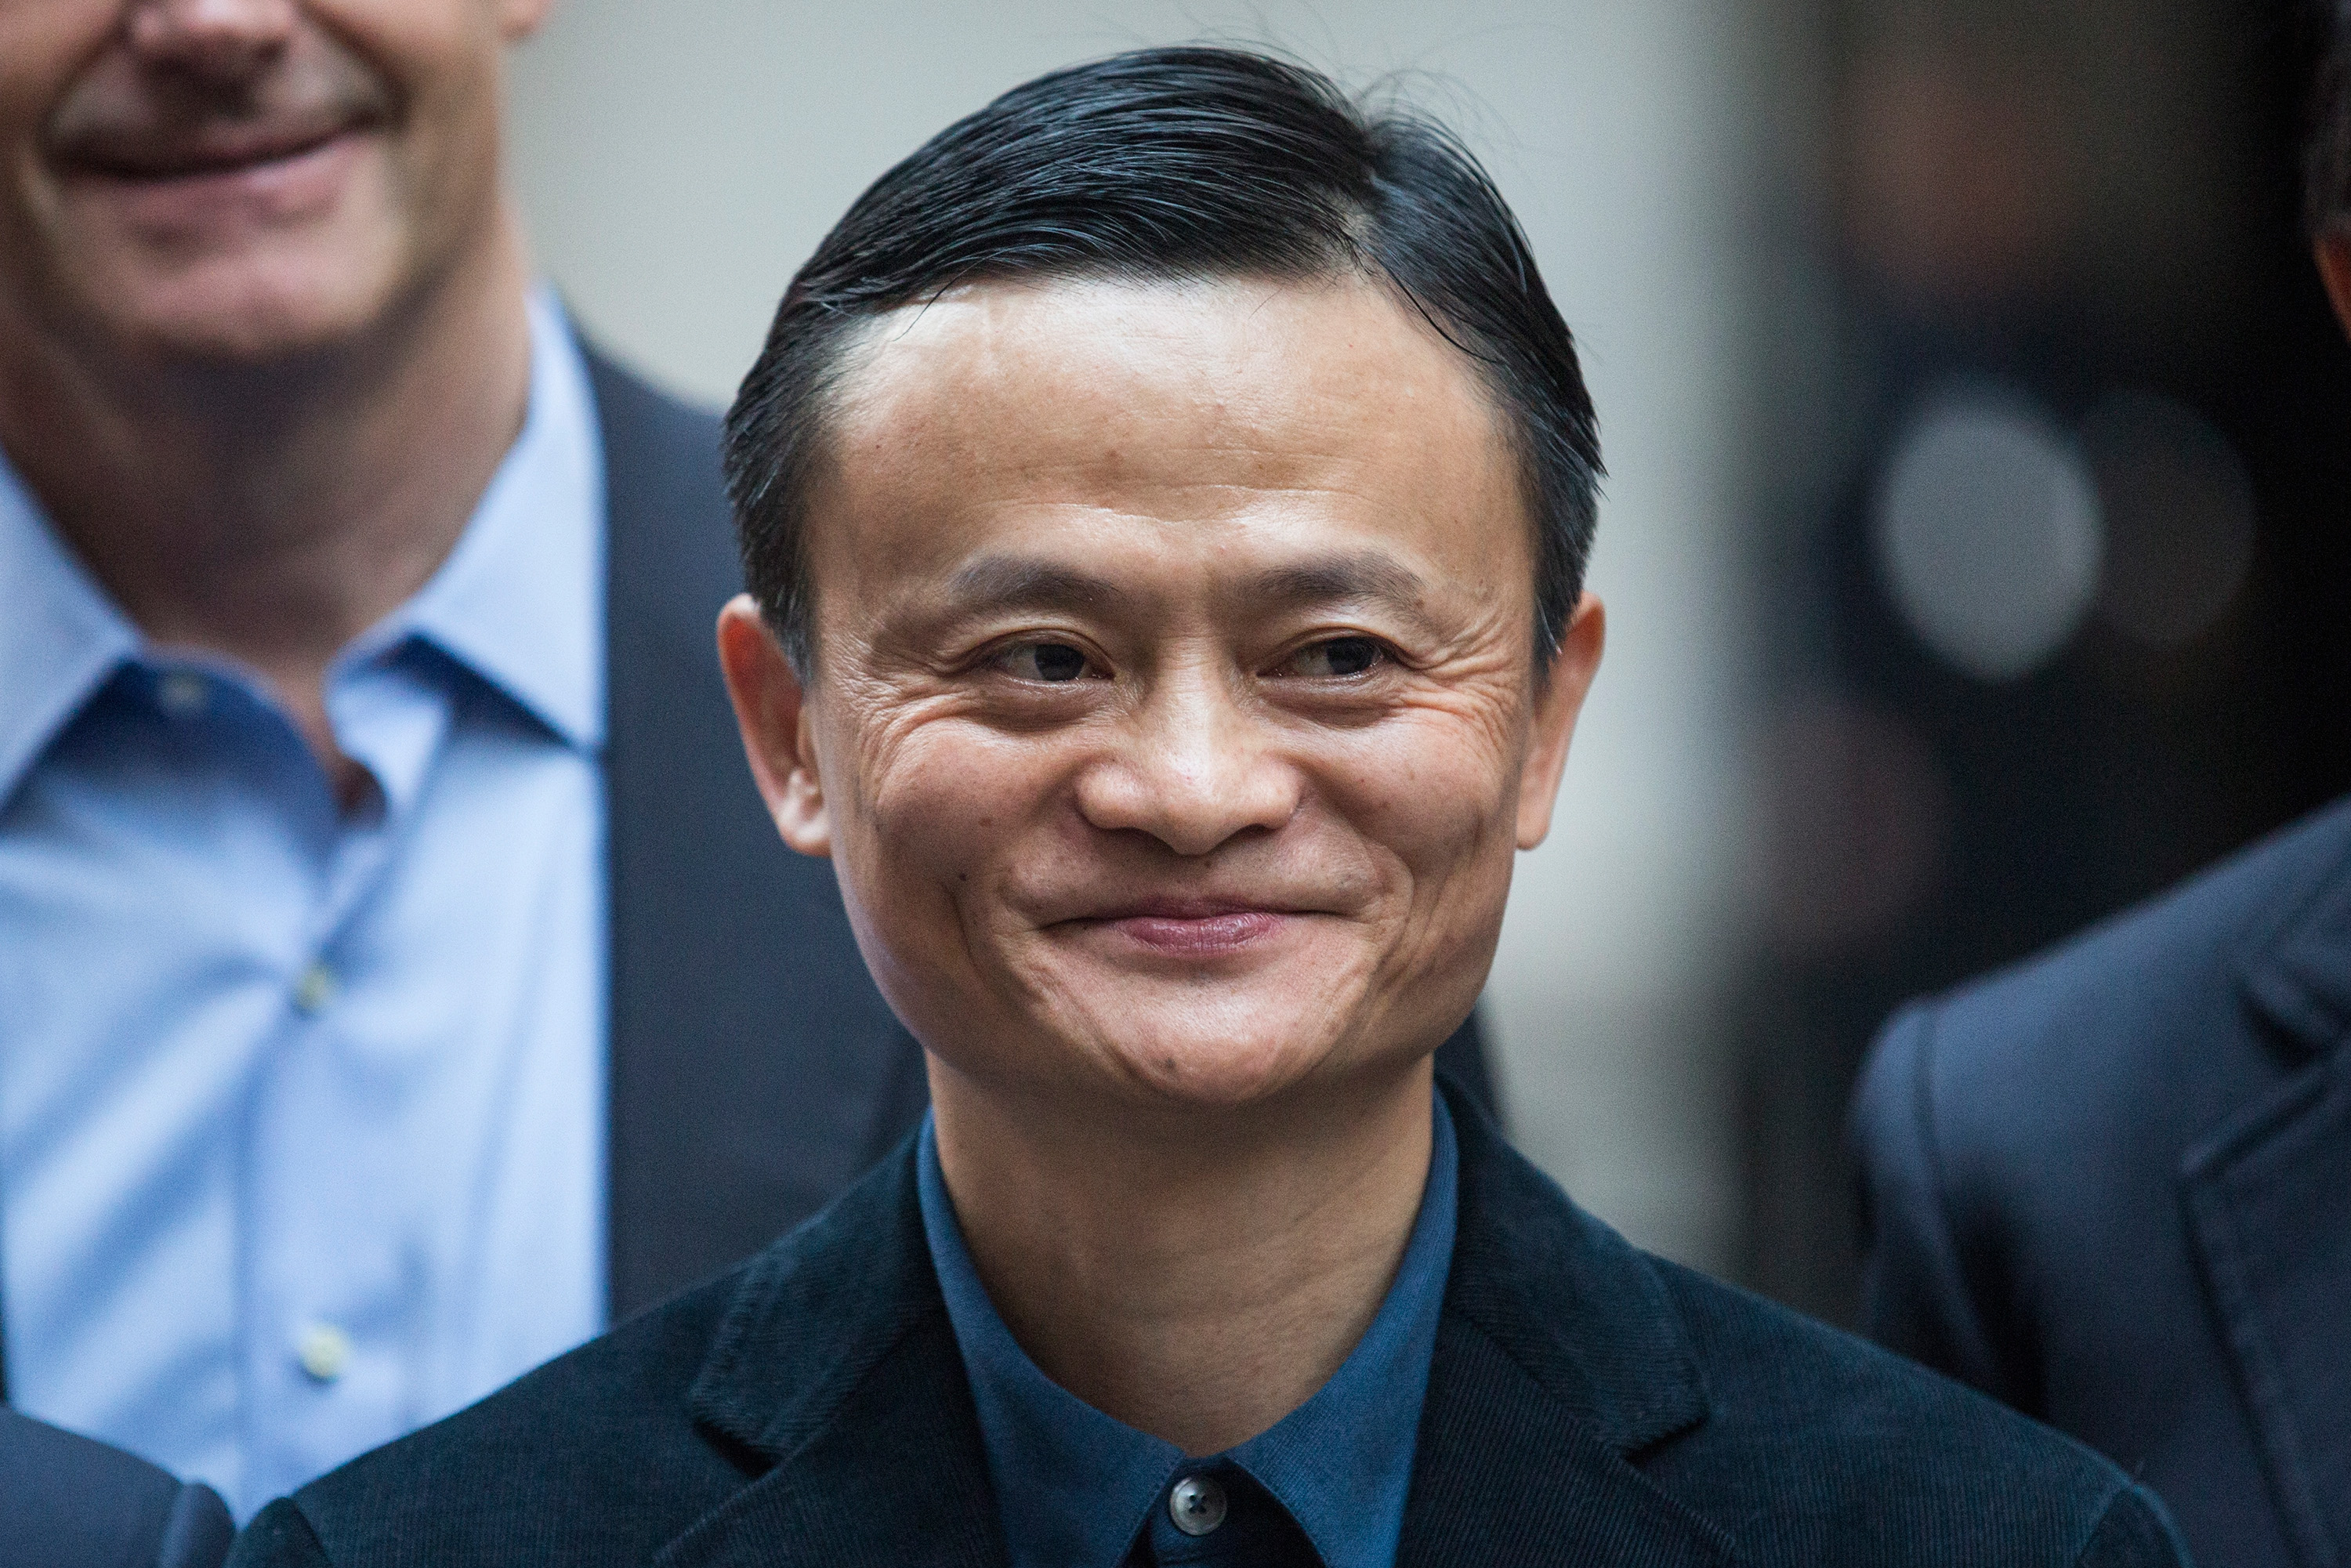 Executive Chairman of Alibaba Group Jack Ma poses for a photo outside the New York Stock Exchange prior to the company's initial price offering (IPO) on Sept. 19, 2014 in New York City.